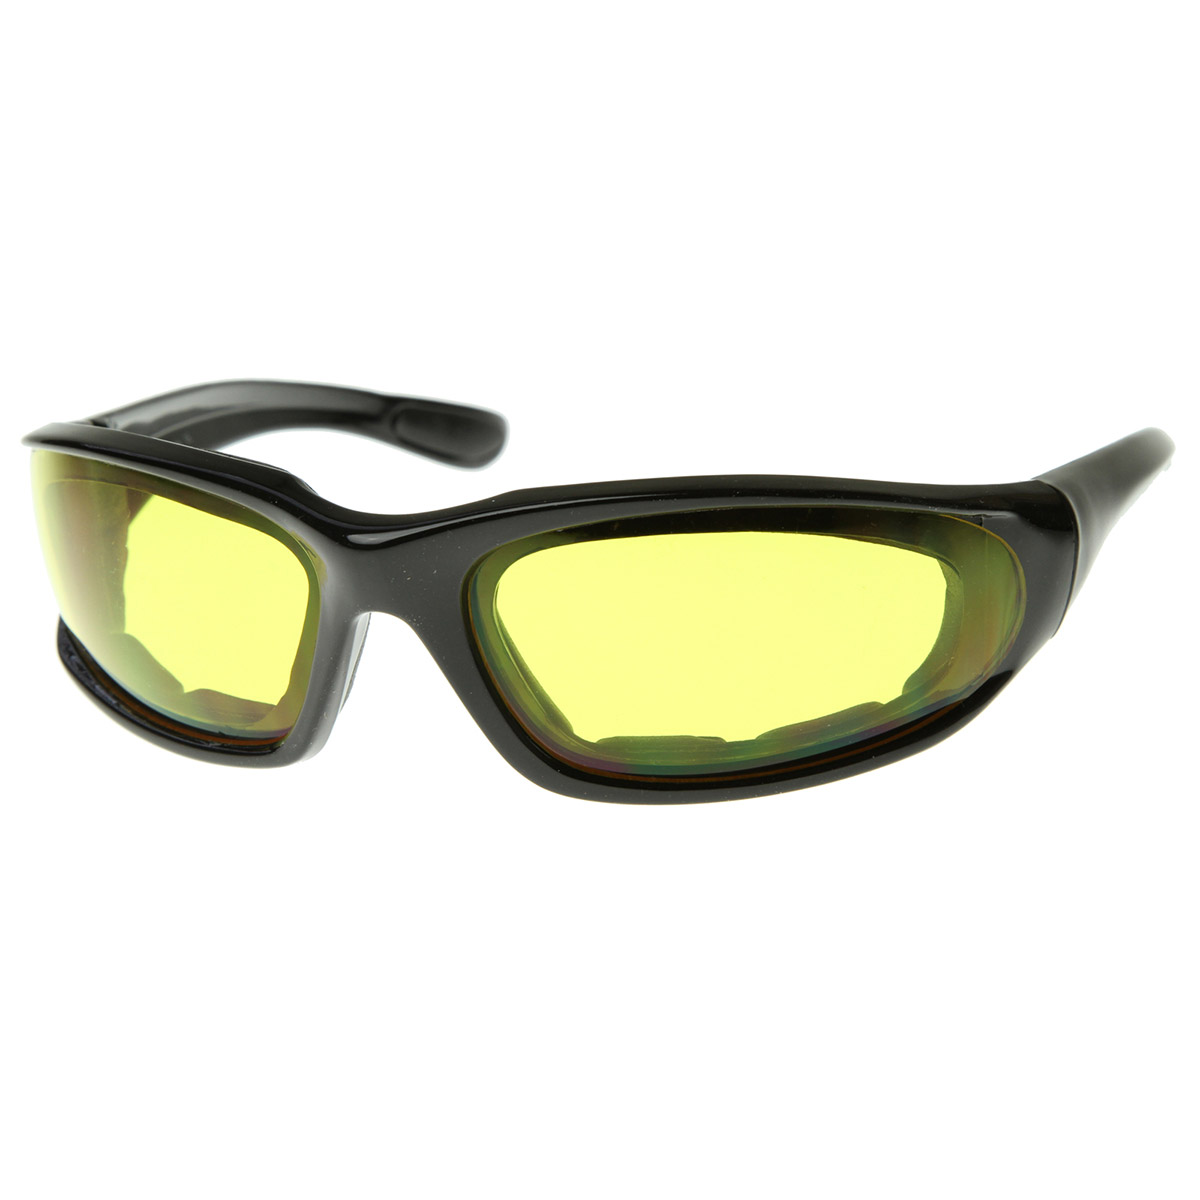 efd71a73482 Eyeglass Protection For Sports